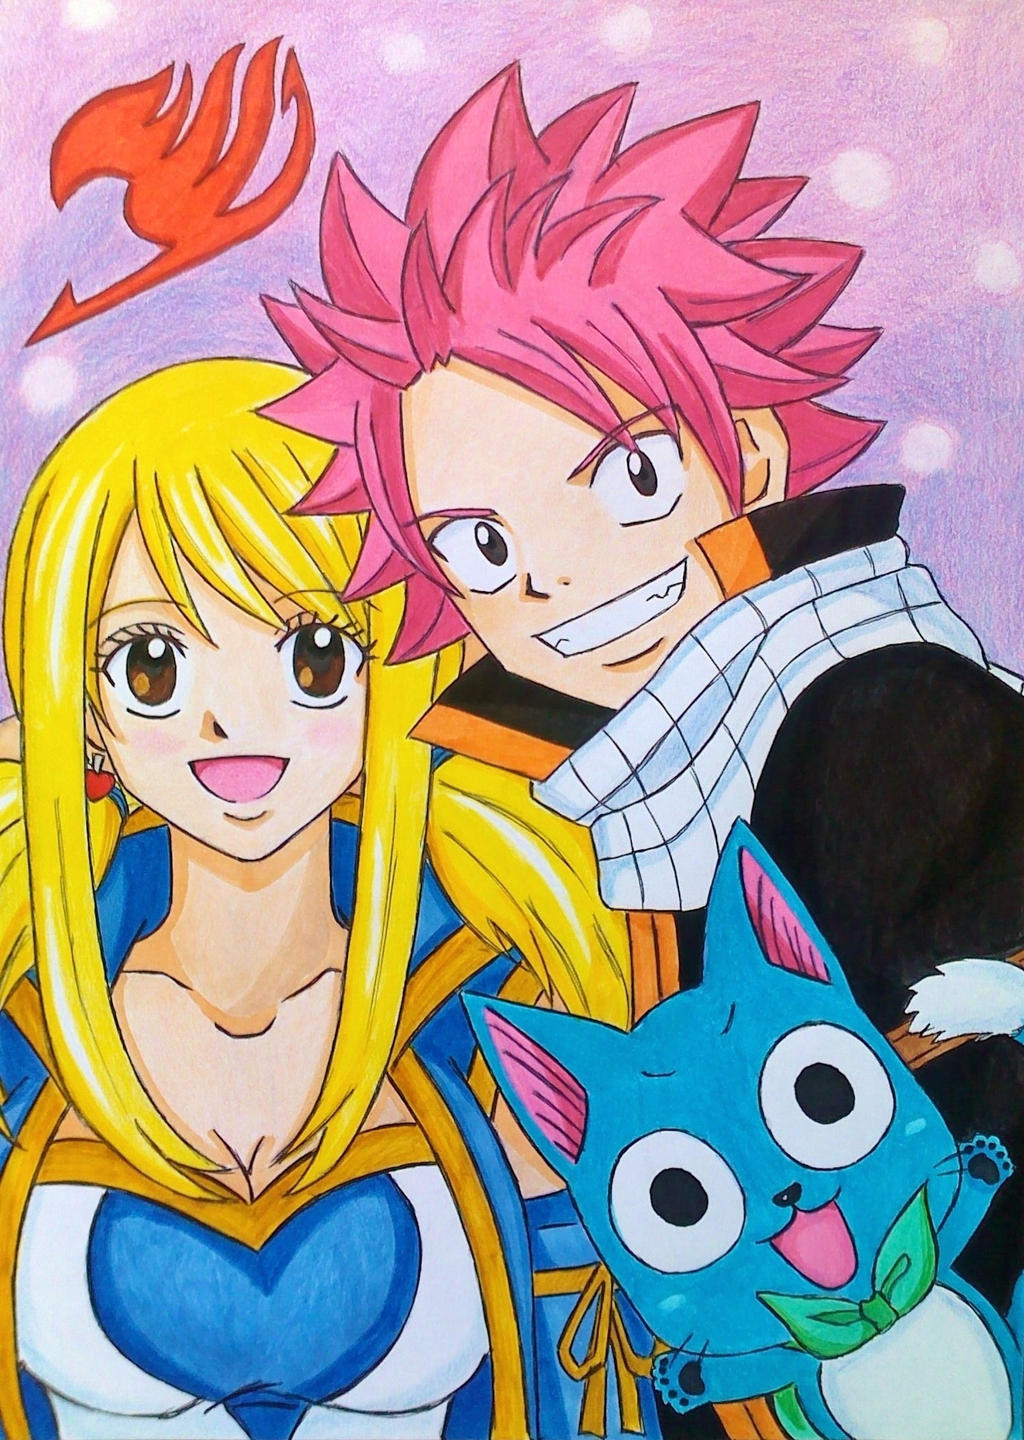 Fairy tail is back natsu lucy and happy by dagga19 on deviantart - Fairy tail lucy et natsu ...